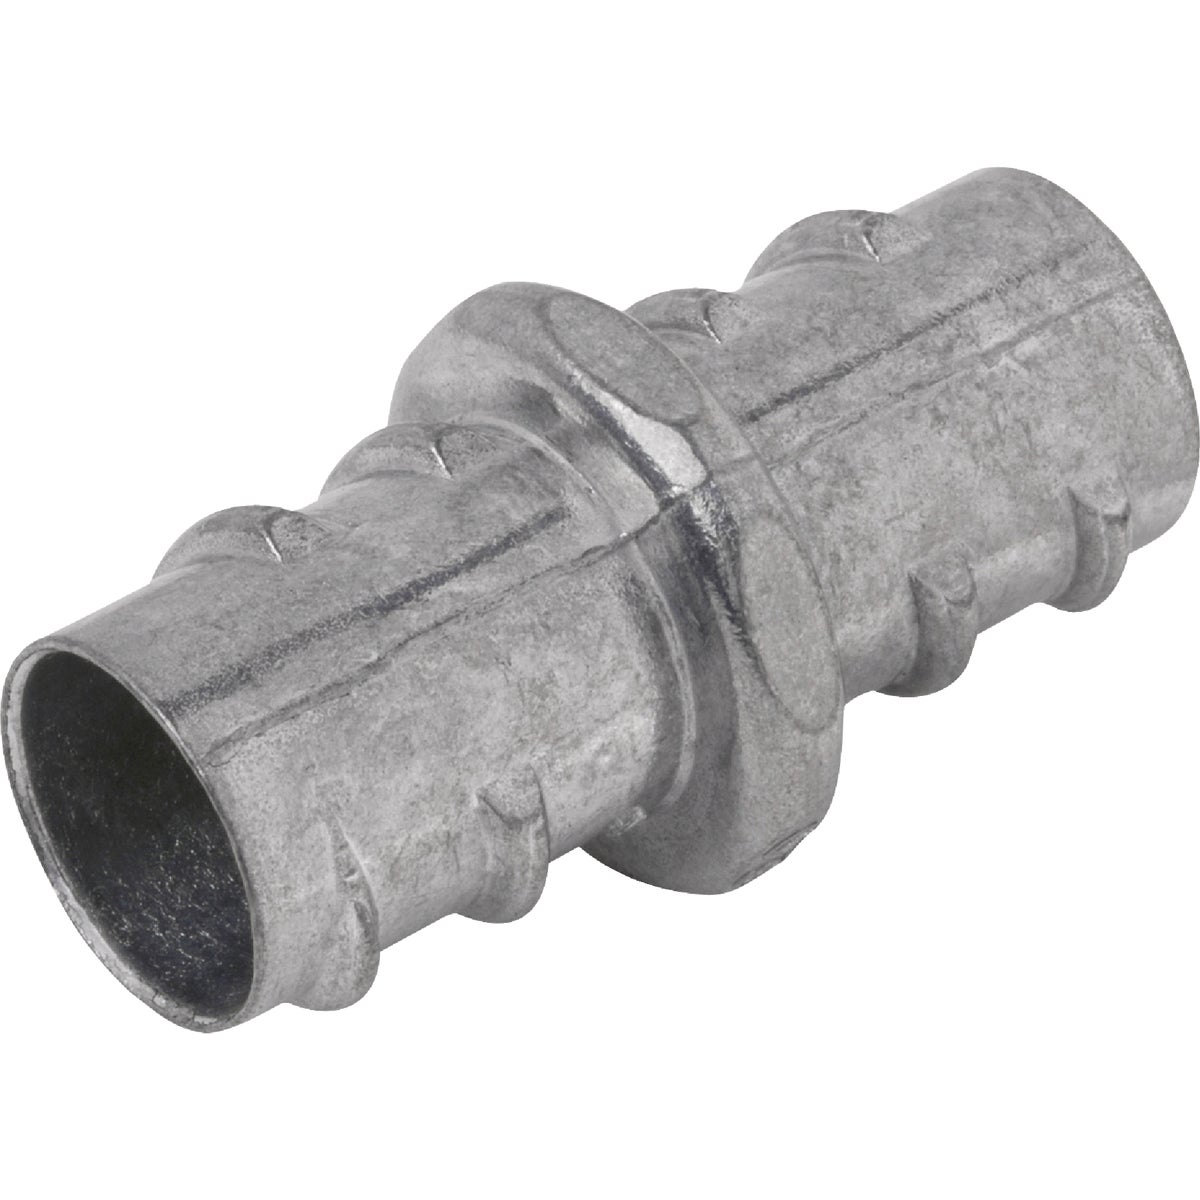 "3/4"" FLEX COUPLING - XK2421 by Thomas & Betts"